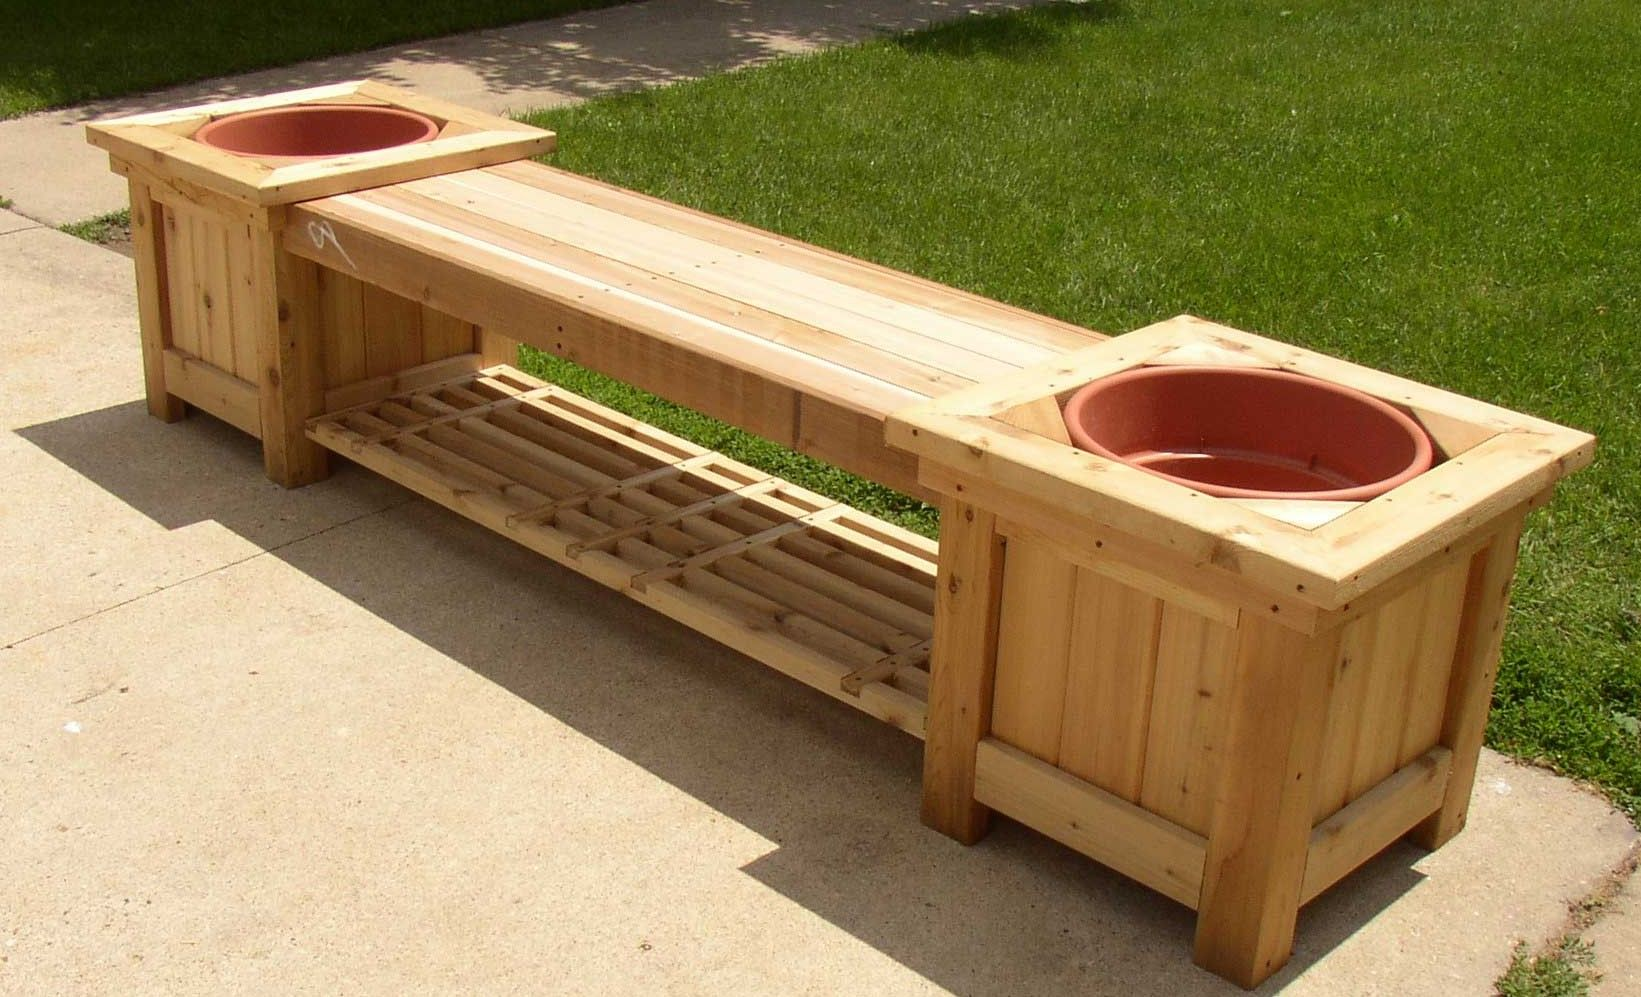 DIY Wood Planter Bench Plans Wooden PDF Build Woodworking .